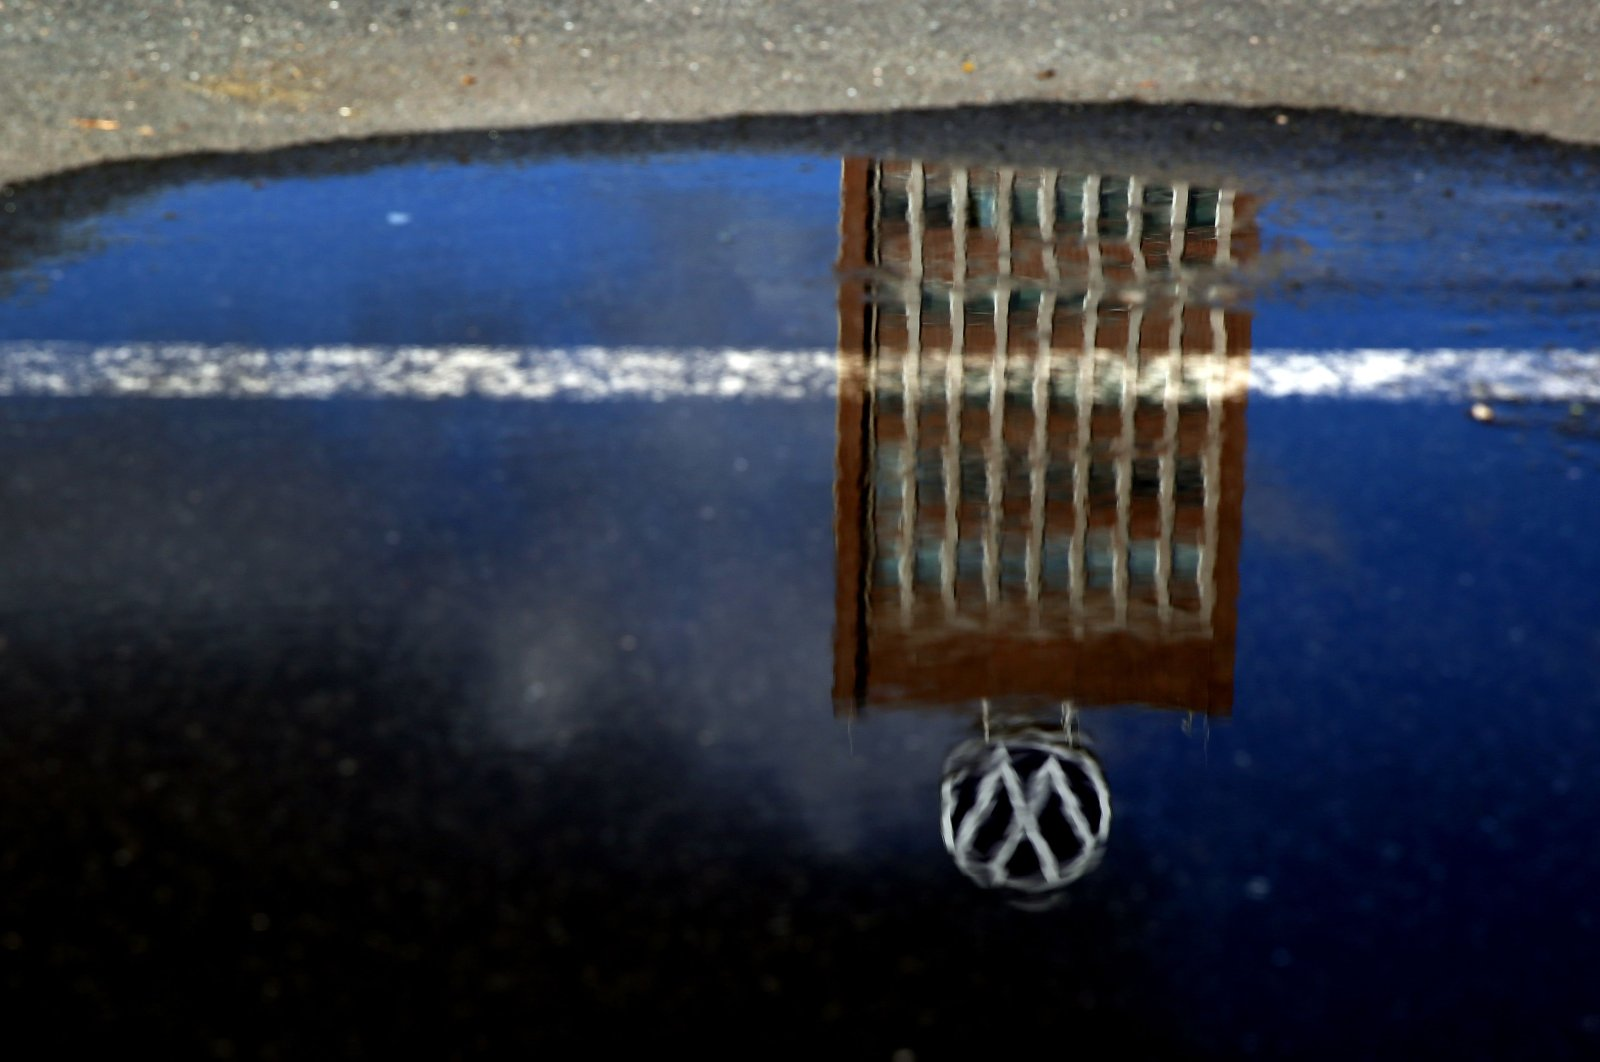 The headquarters of German carmaker Volkswagen (VW) reflects in a puddle in Wolfsburg, Germany, Feb. 28, 2020. (AFP Photo)